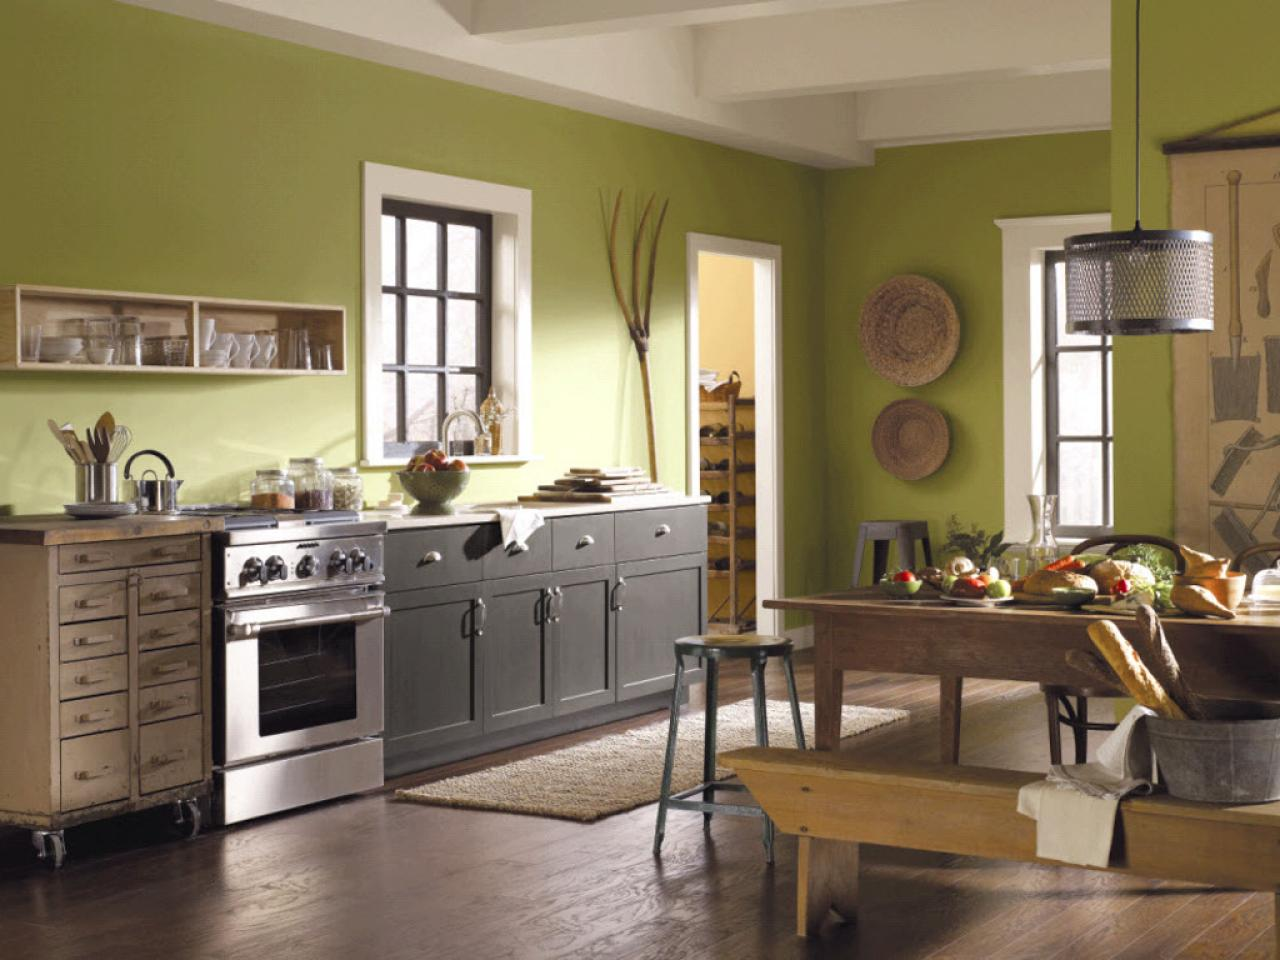 Green kitchen paint colors pictures ideas from hgtv hgtv for Best kitchen paint colors